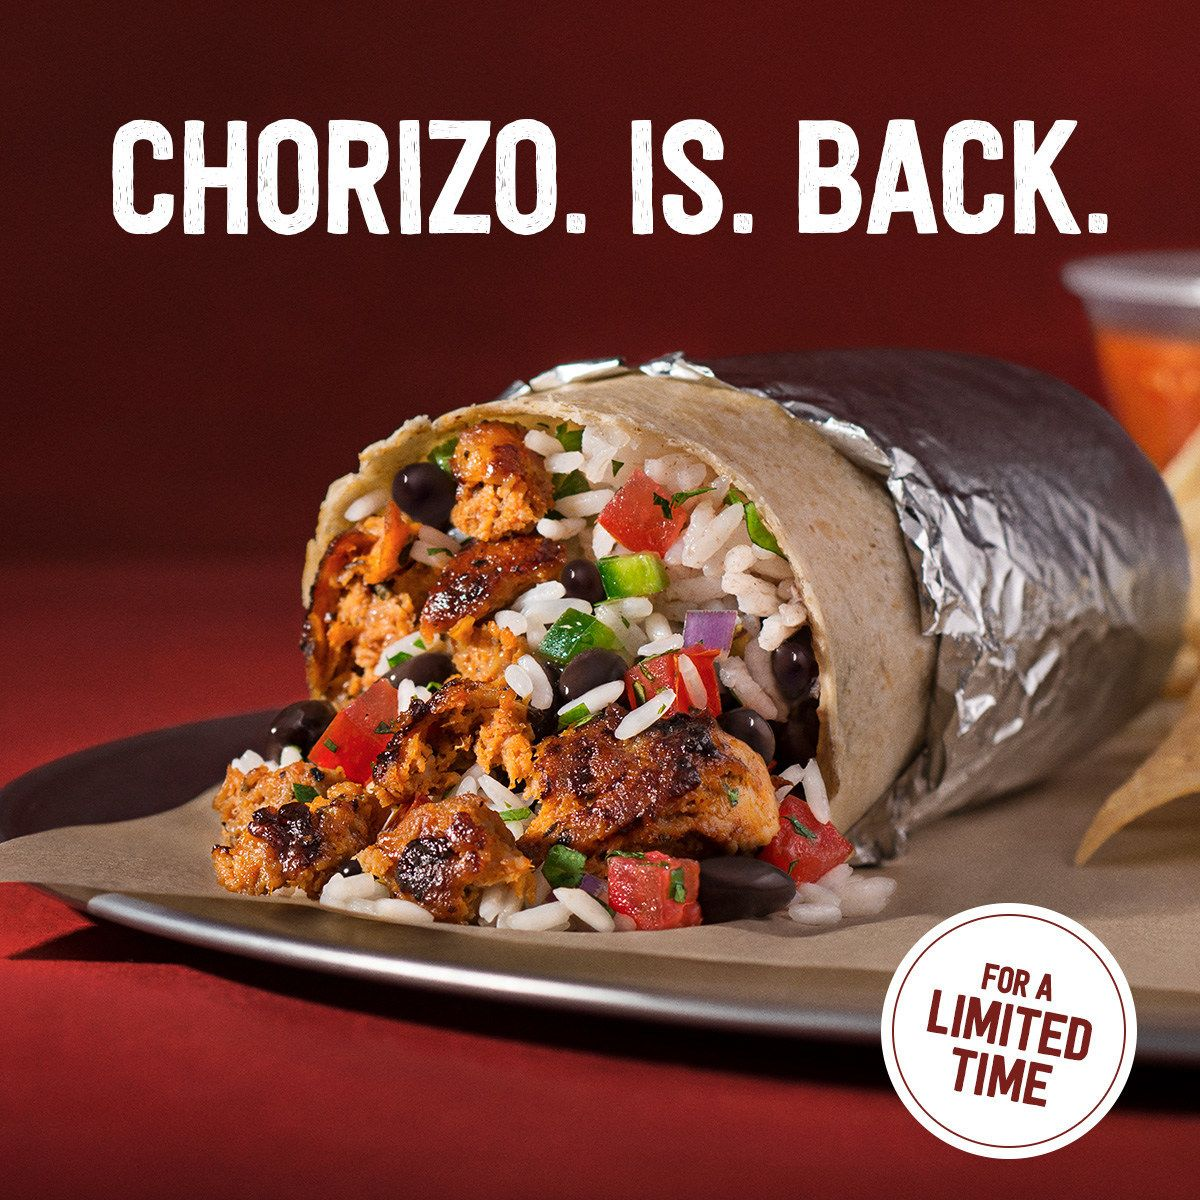 You Asked, Chipotle Answered. Chorizo Returns.